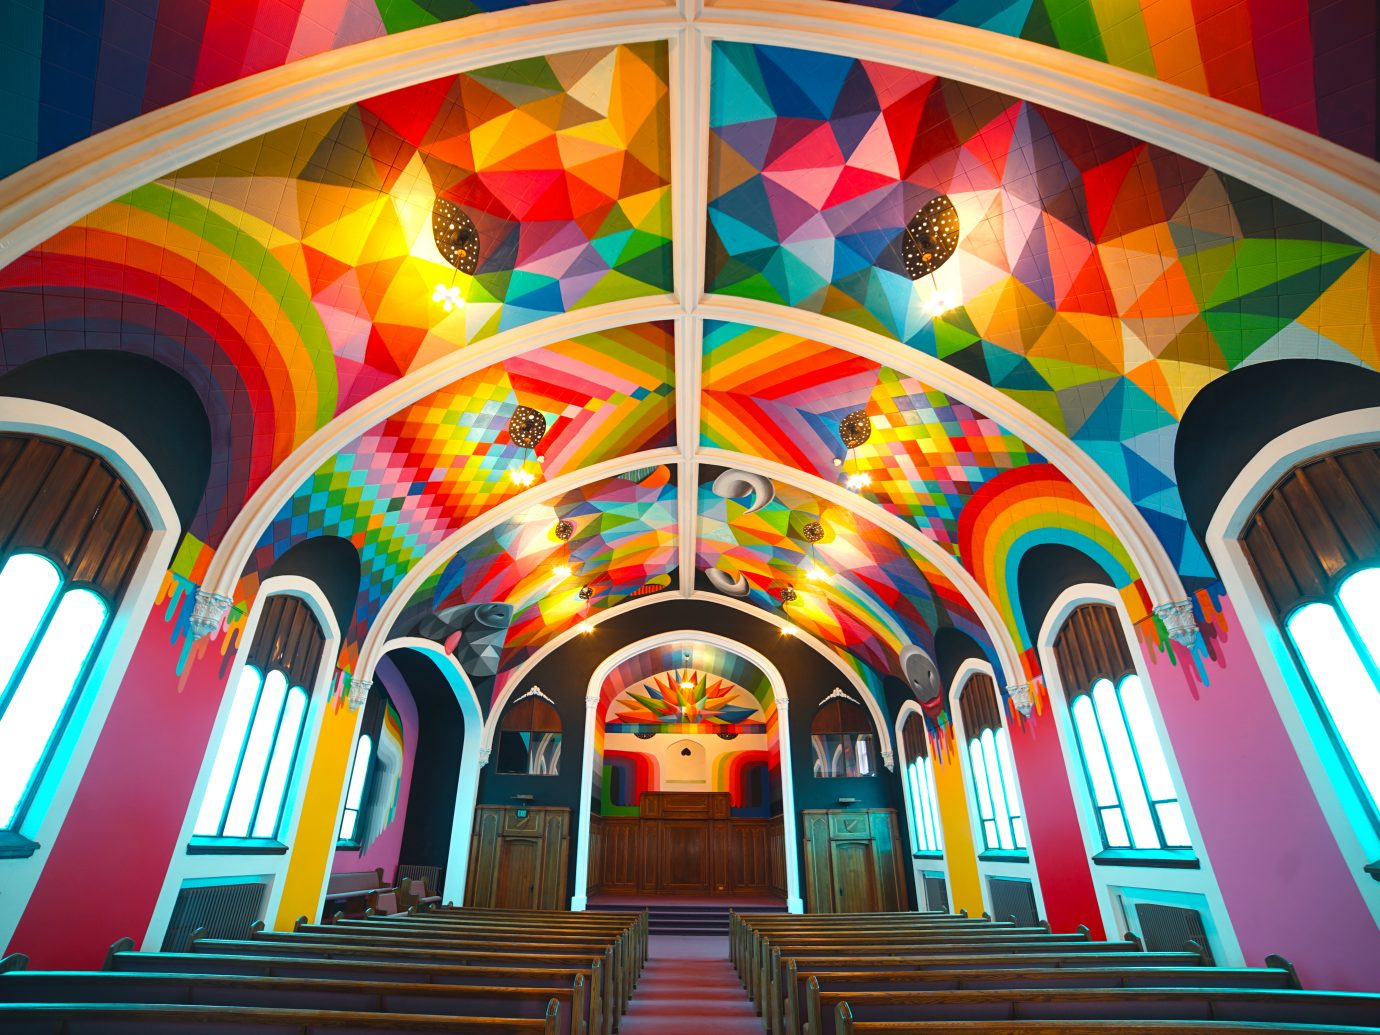 frontal view of International Church of Cannabis interior